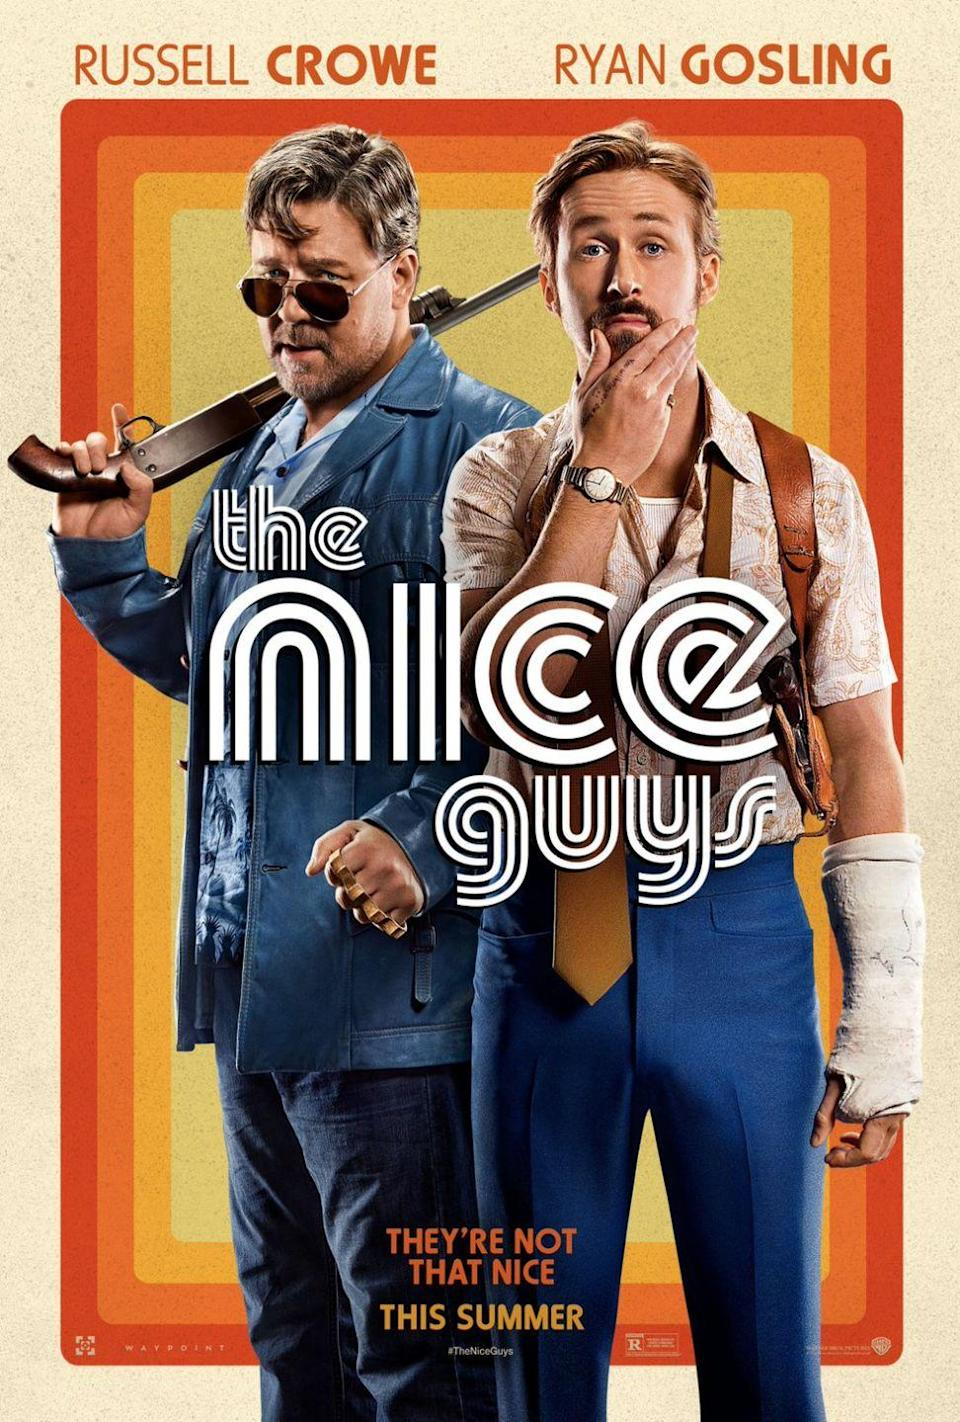 "<p>If you loved <em>Kiss Kiss Bang Bang, </em><em>The Nice Guys</em> is another neo-noir <a href=""https://www.goodhousekeeping.com/life/entertainment/g32418904/best-comedies-on-netflix/"" rel=""nofollow noopener"" target=""_blank"" data-ylk=""slk:comedy film"" class=""link rapid-noclick-resp"">comedy film</a> by the same director (Shane Black). In this one, Ryan Gosling and Russell Crowe star as two L.A. detectives in the '70s who team up to investigate a missing girl and a mysterious death. <br></p><p><a class=""link rapid-noclick-resp"" href=""https://www.amazon.com/Nice-Guys-Russell-Crowe/dp/B01FV2BBF4?tag=syn-yahoo-20&ascsubtag=%5Bartid%7C10055.g.34396232%5Bsrc%7Cyahoo-us"" rel=""nofollow noopener"" target=""_blank"" data-ylk=""slk:WATCH ON AMAZON"">WATCH ON AMAZON</a></p>"